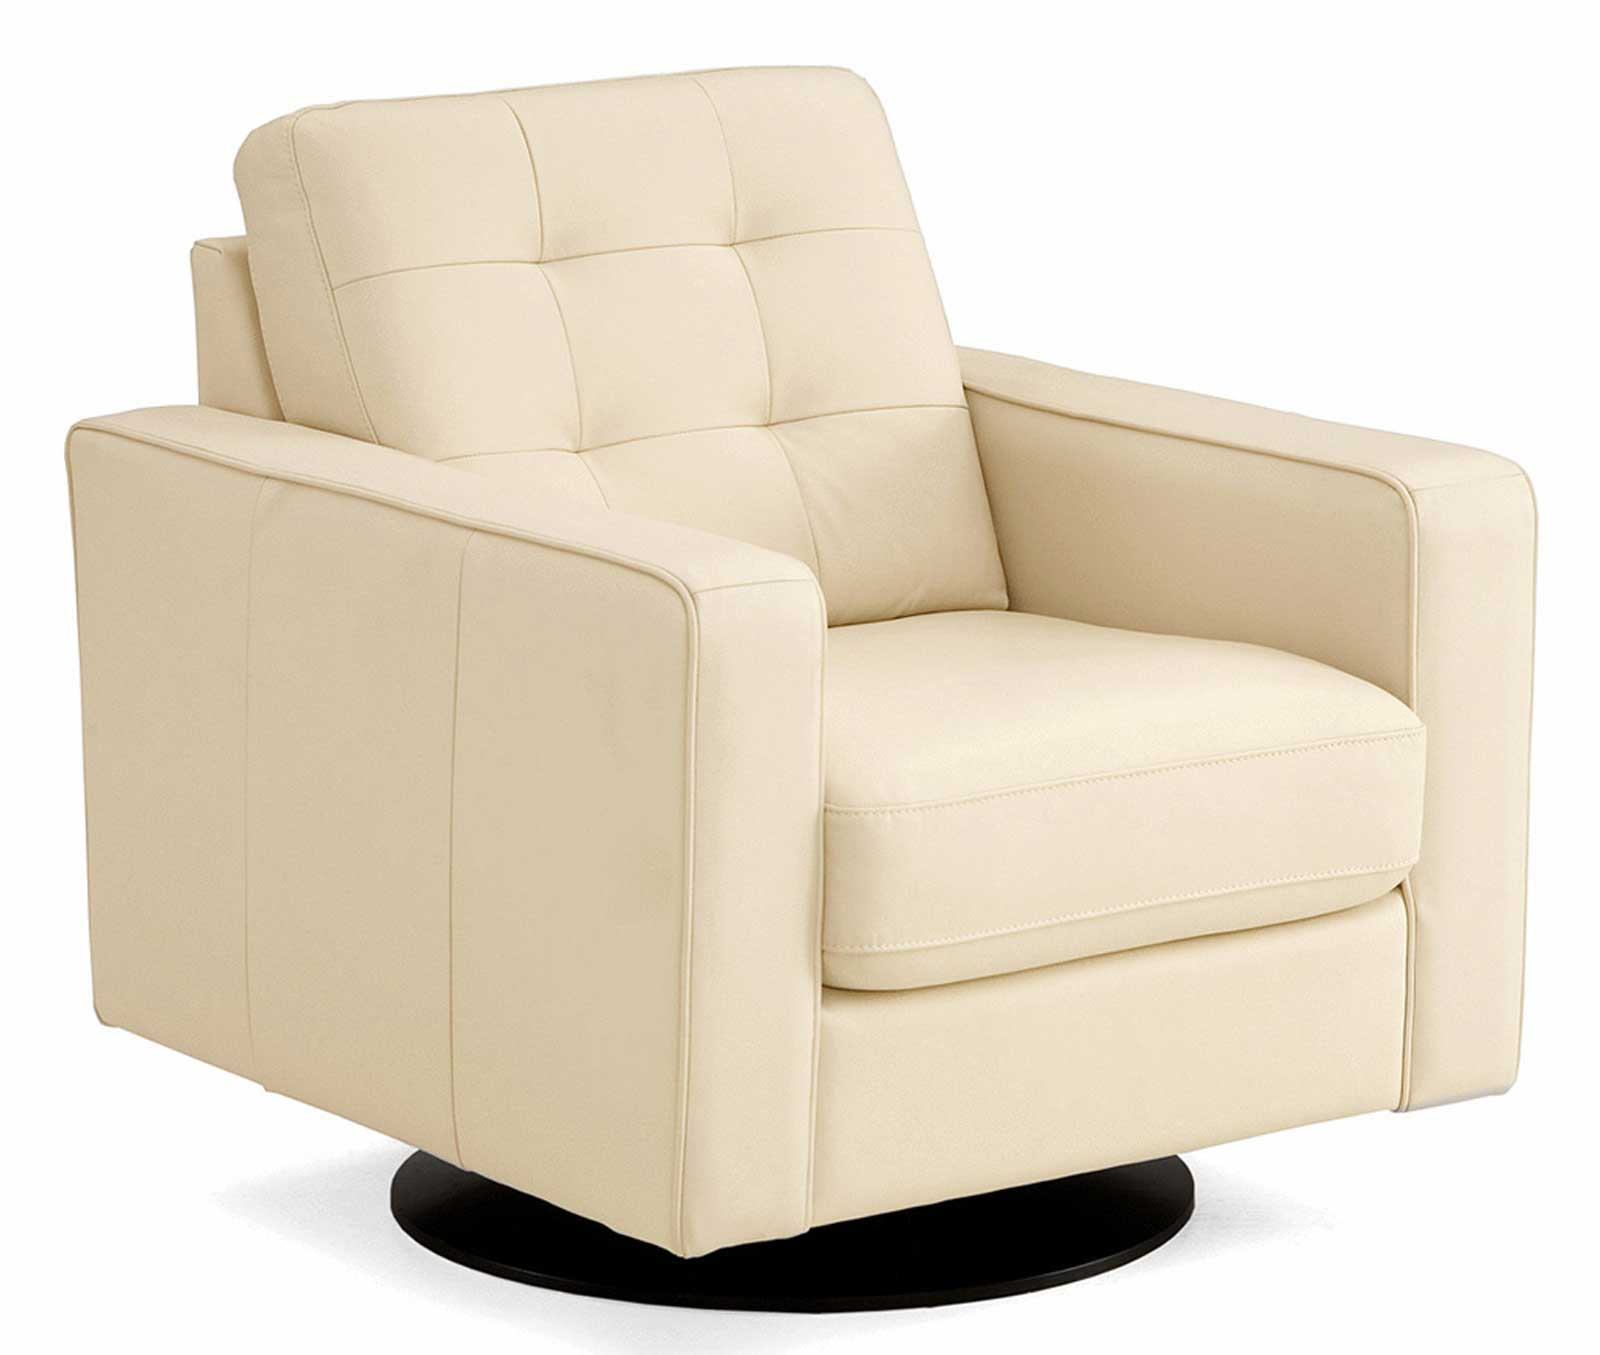 swivel chairs living room furniture | Office Furniture